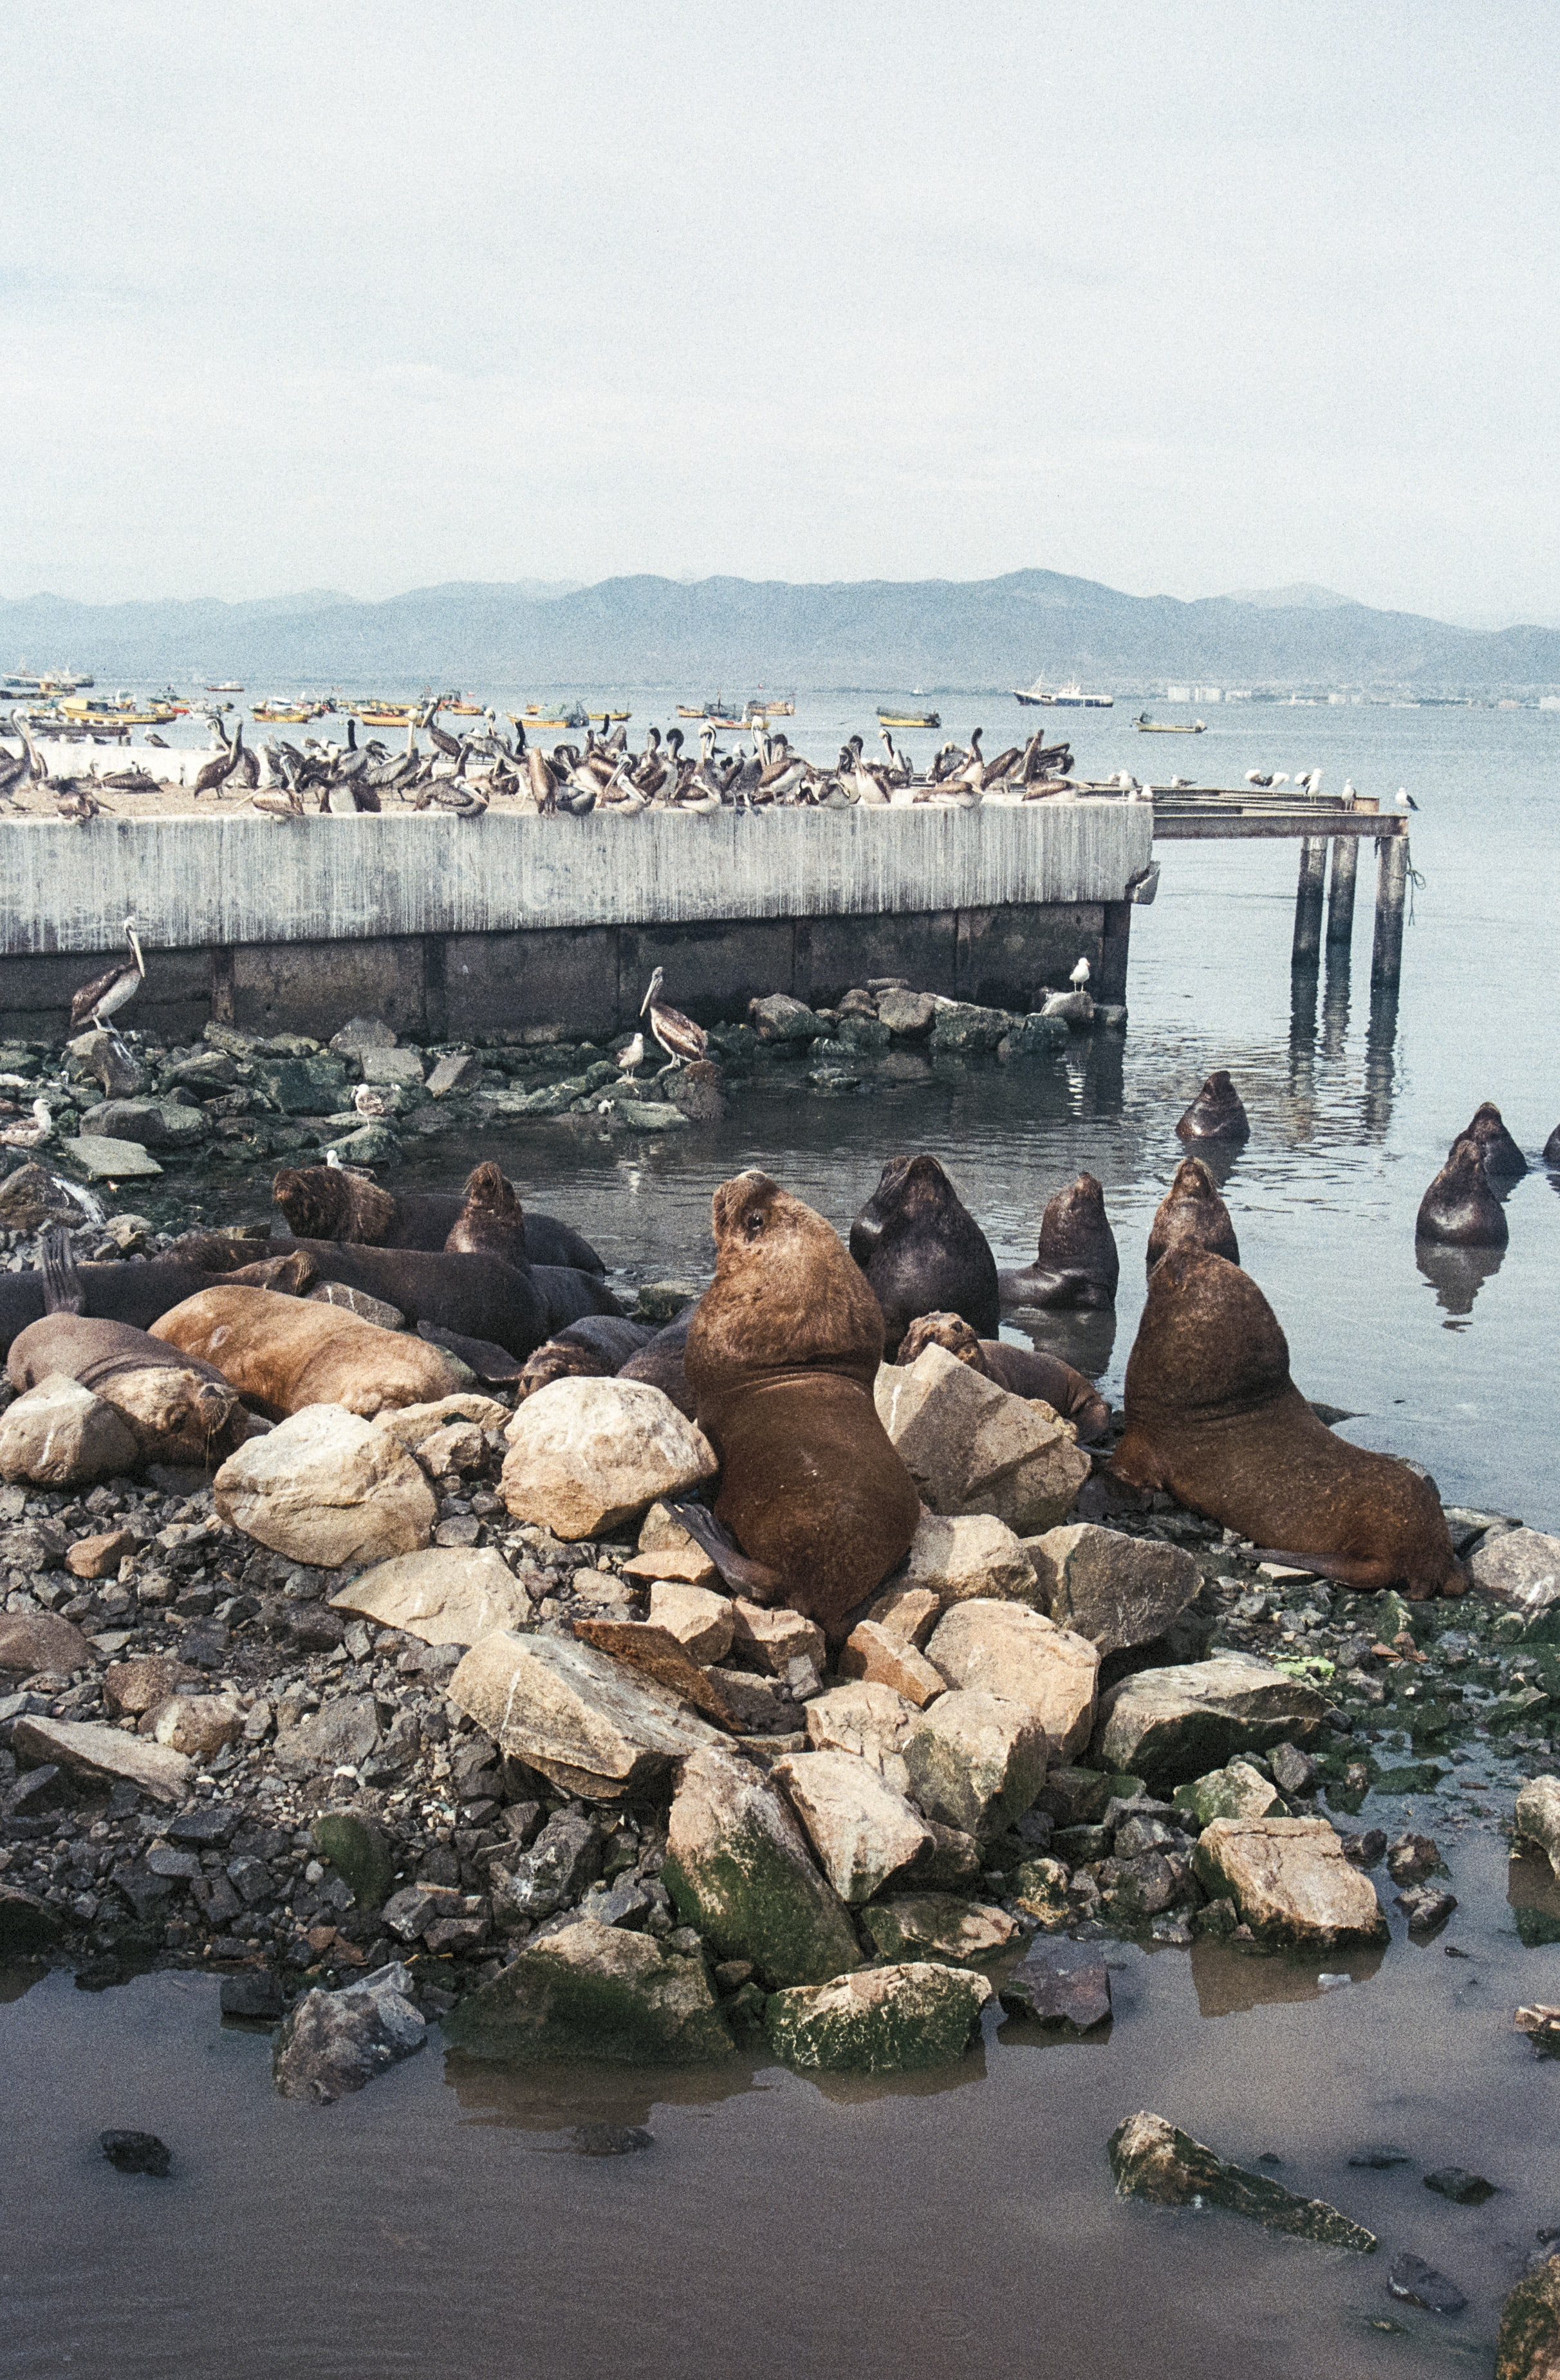 brown and white seals on body of water at daytime